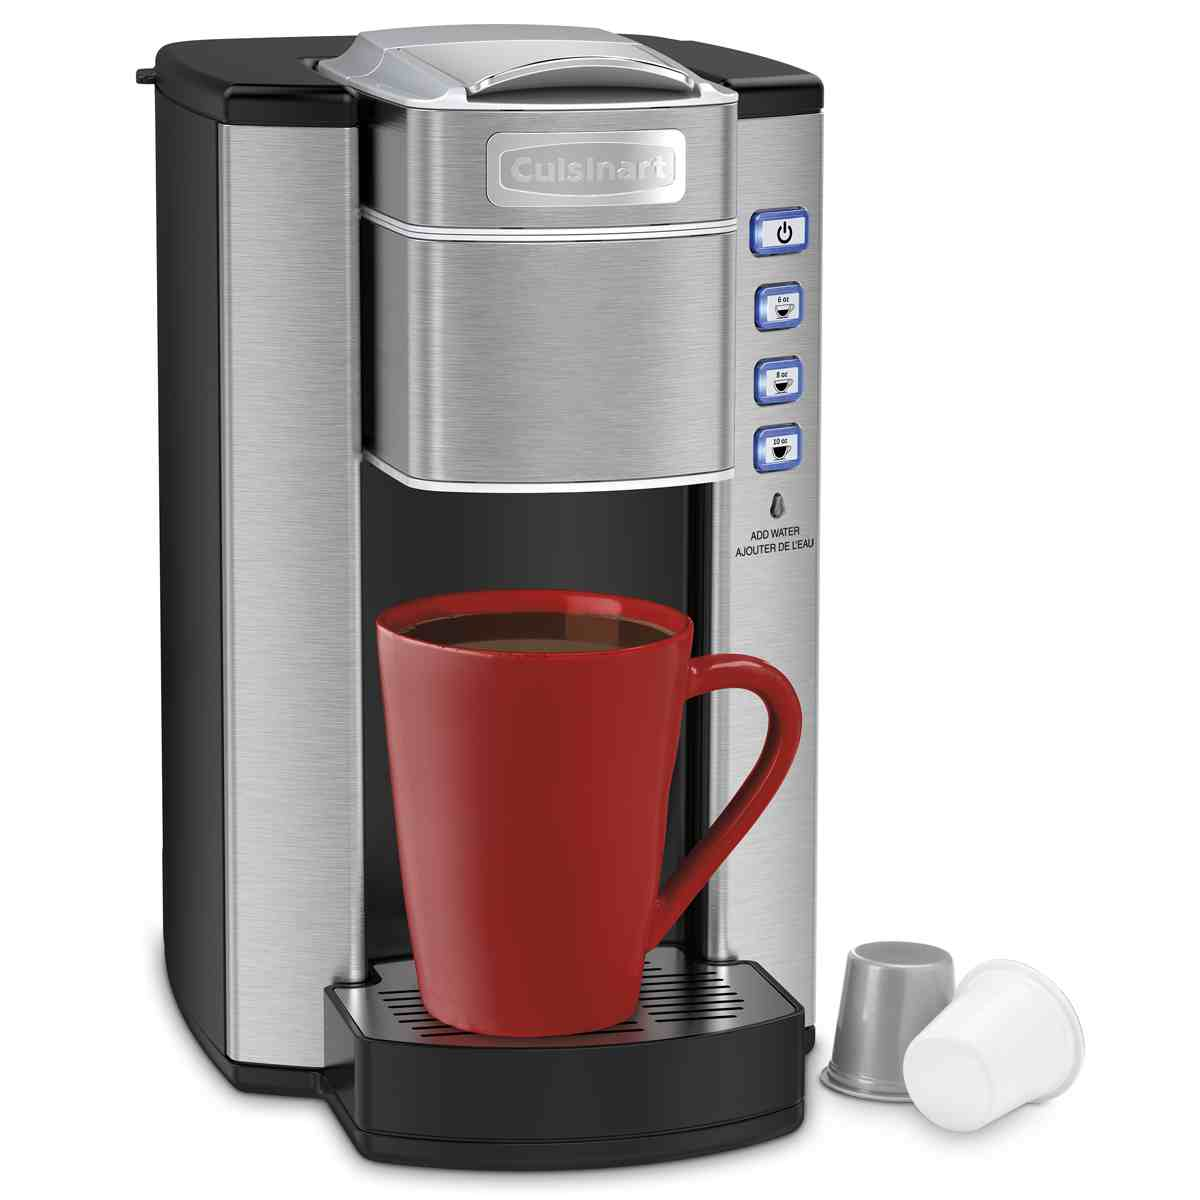 Cuisinart Single Serve Coffeemaker - Keurig Compatible